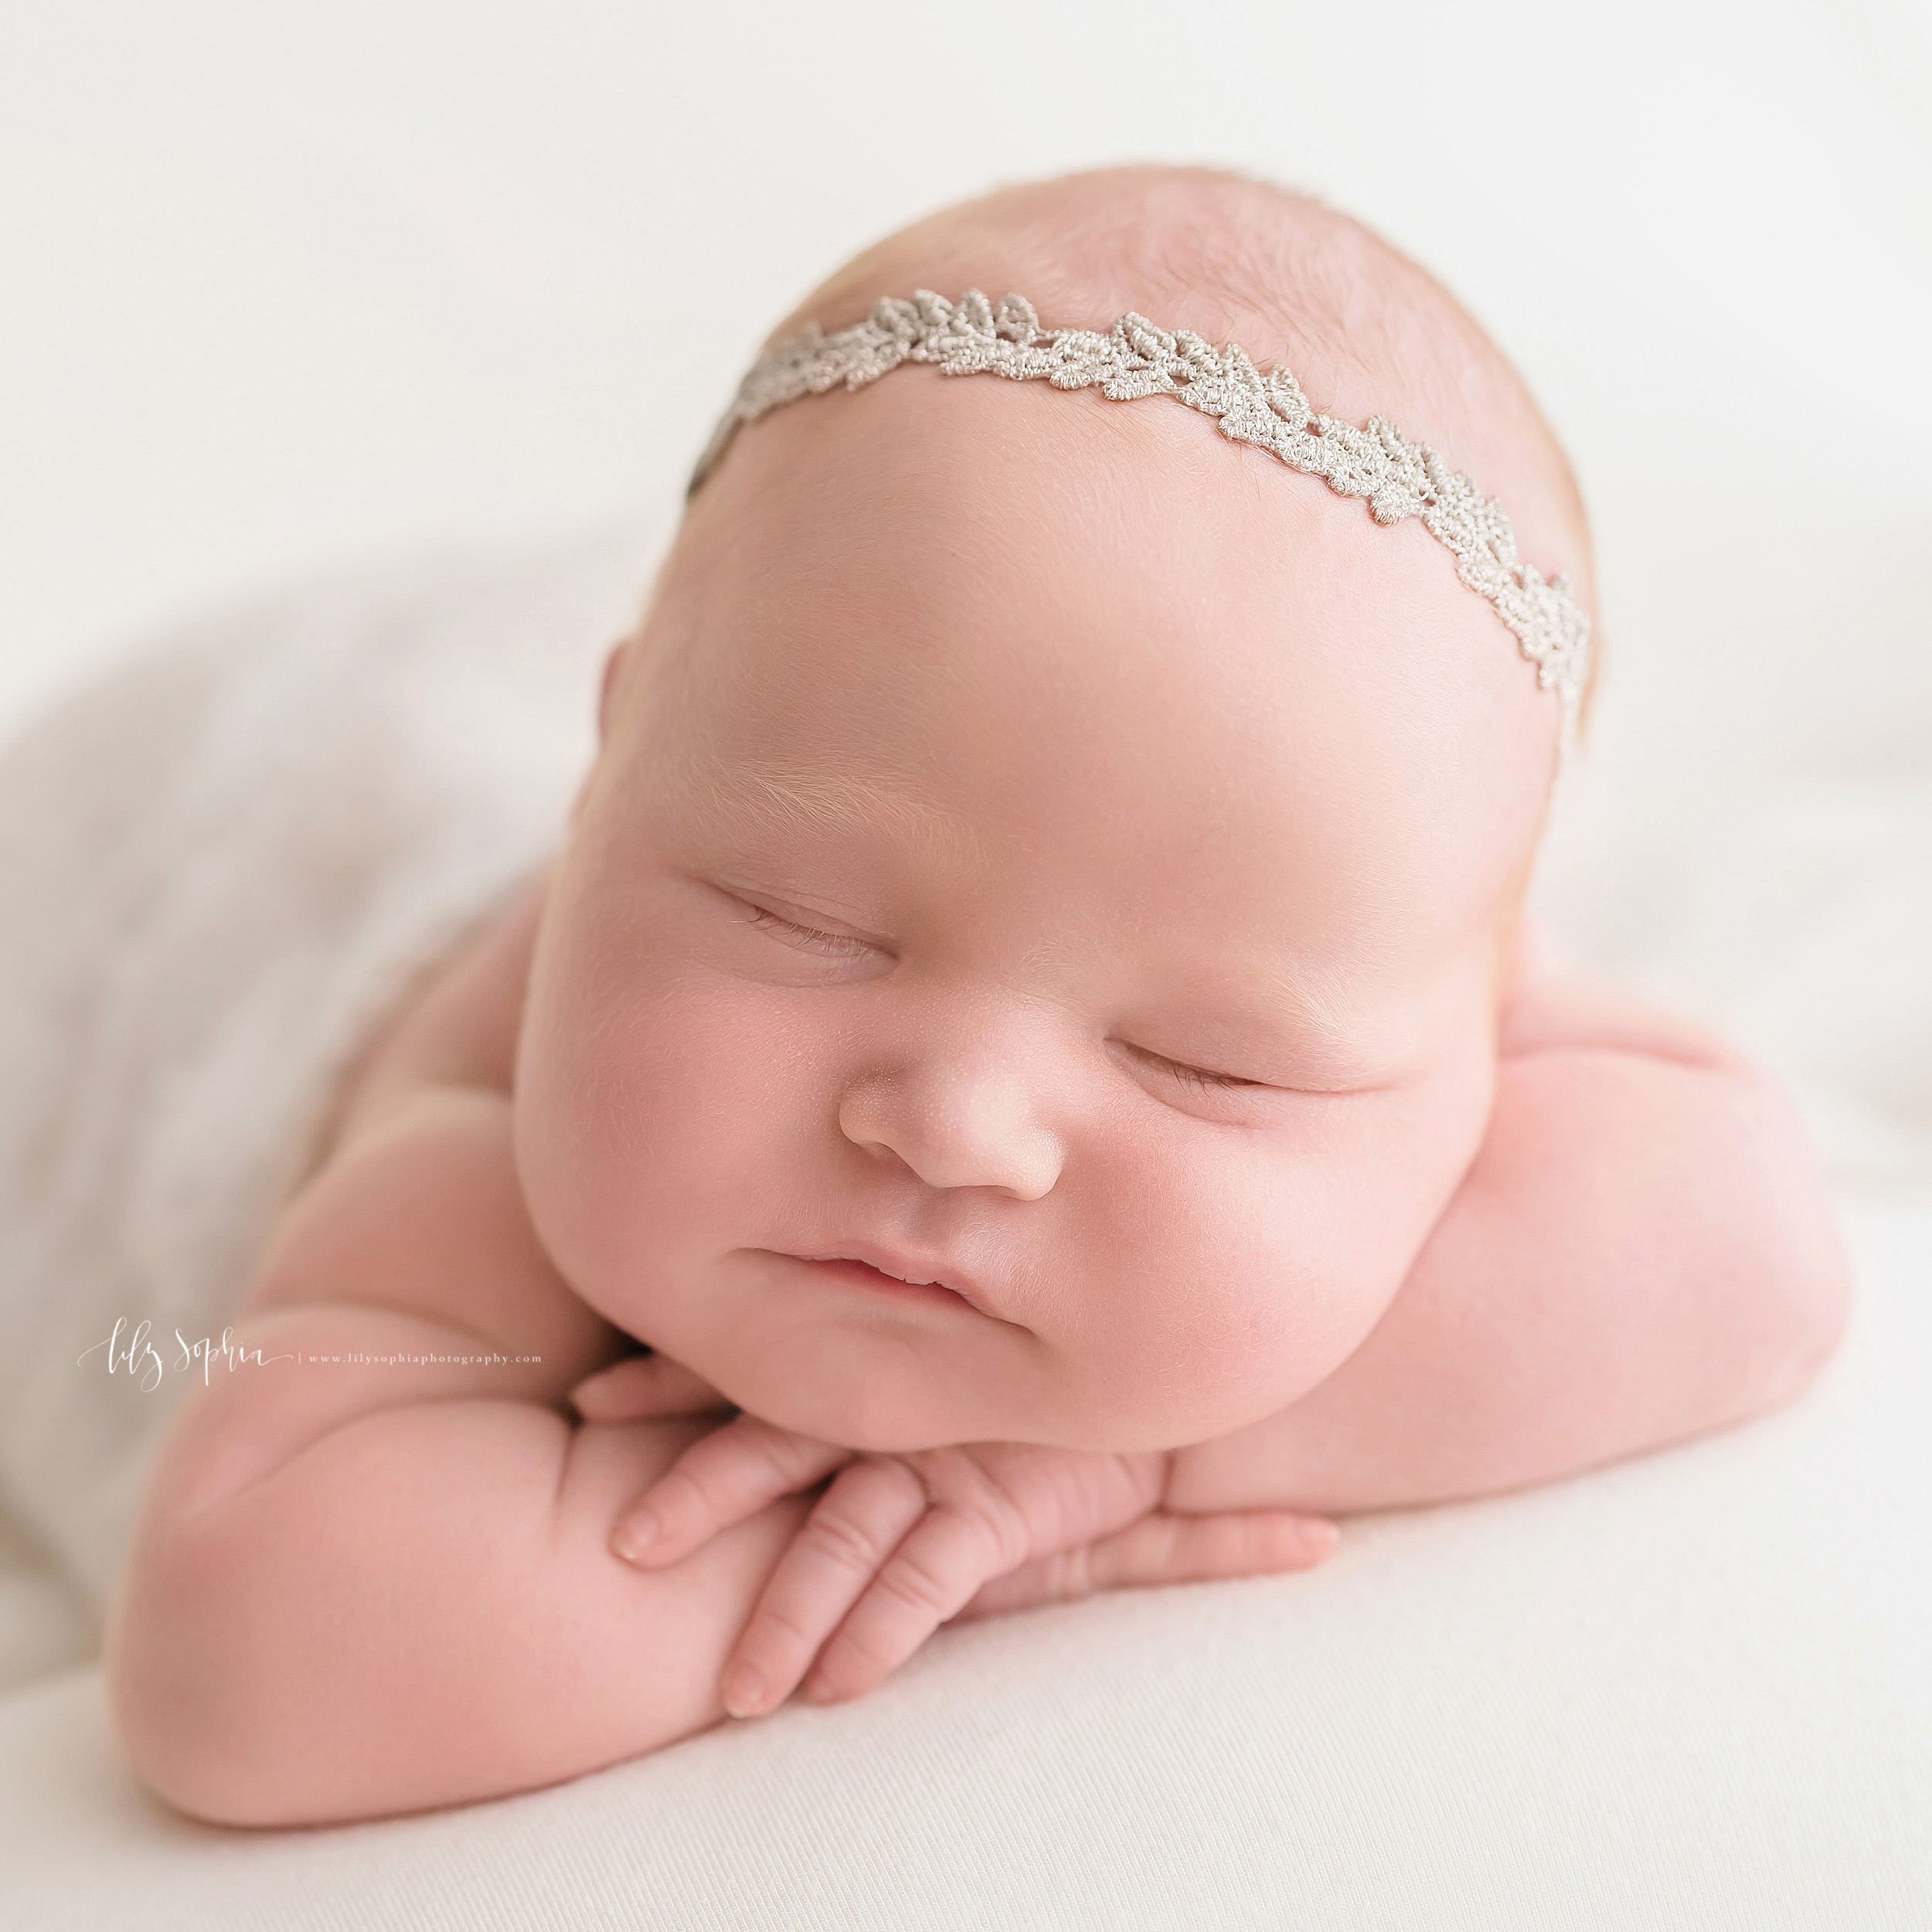 Newborn photo of a chunky baby girl as she sleeps with her hands crossed under her chin and wears a delicate headband in her hair in an Atlanta studio.